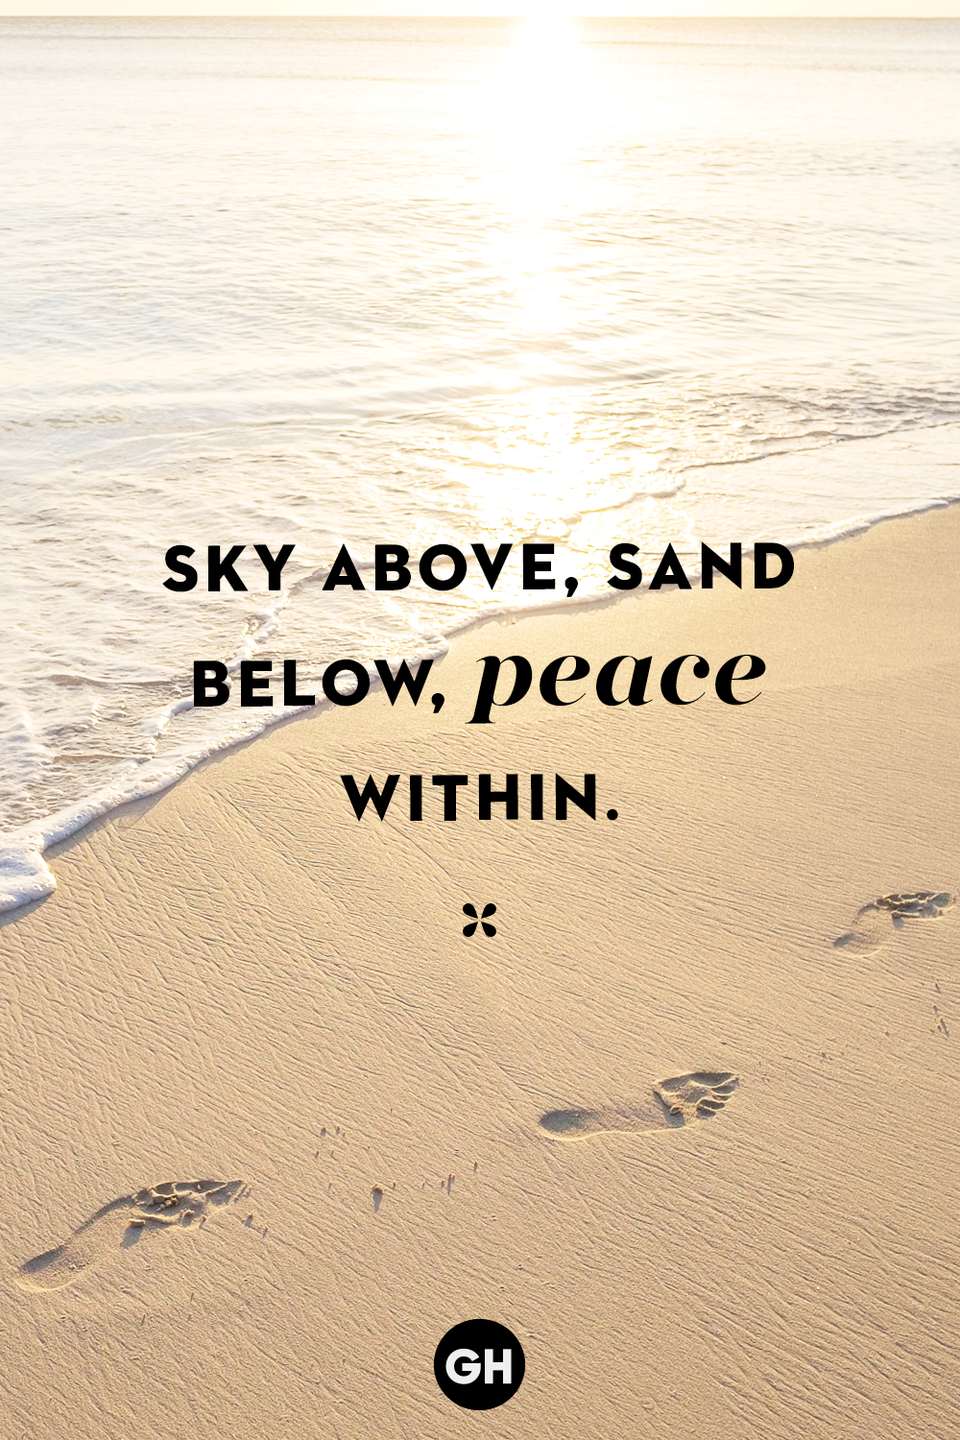 <p>Sky above, sand below, peace within.</p>